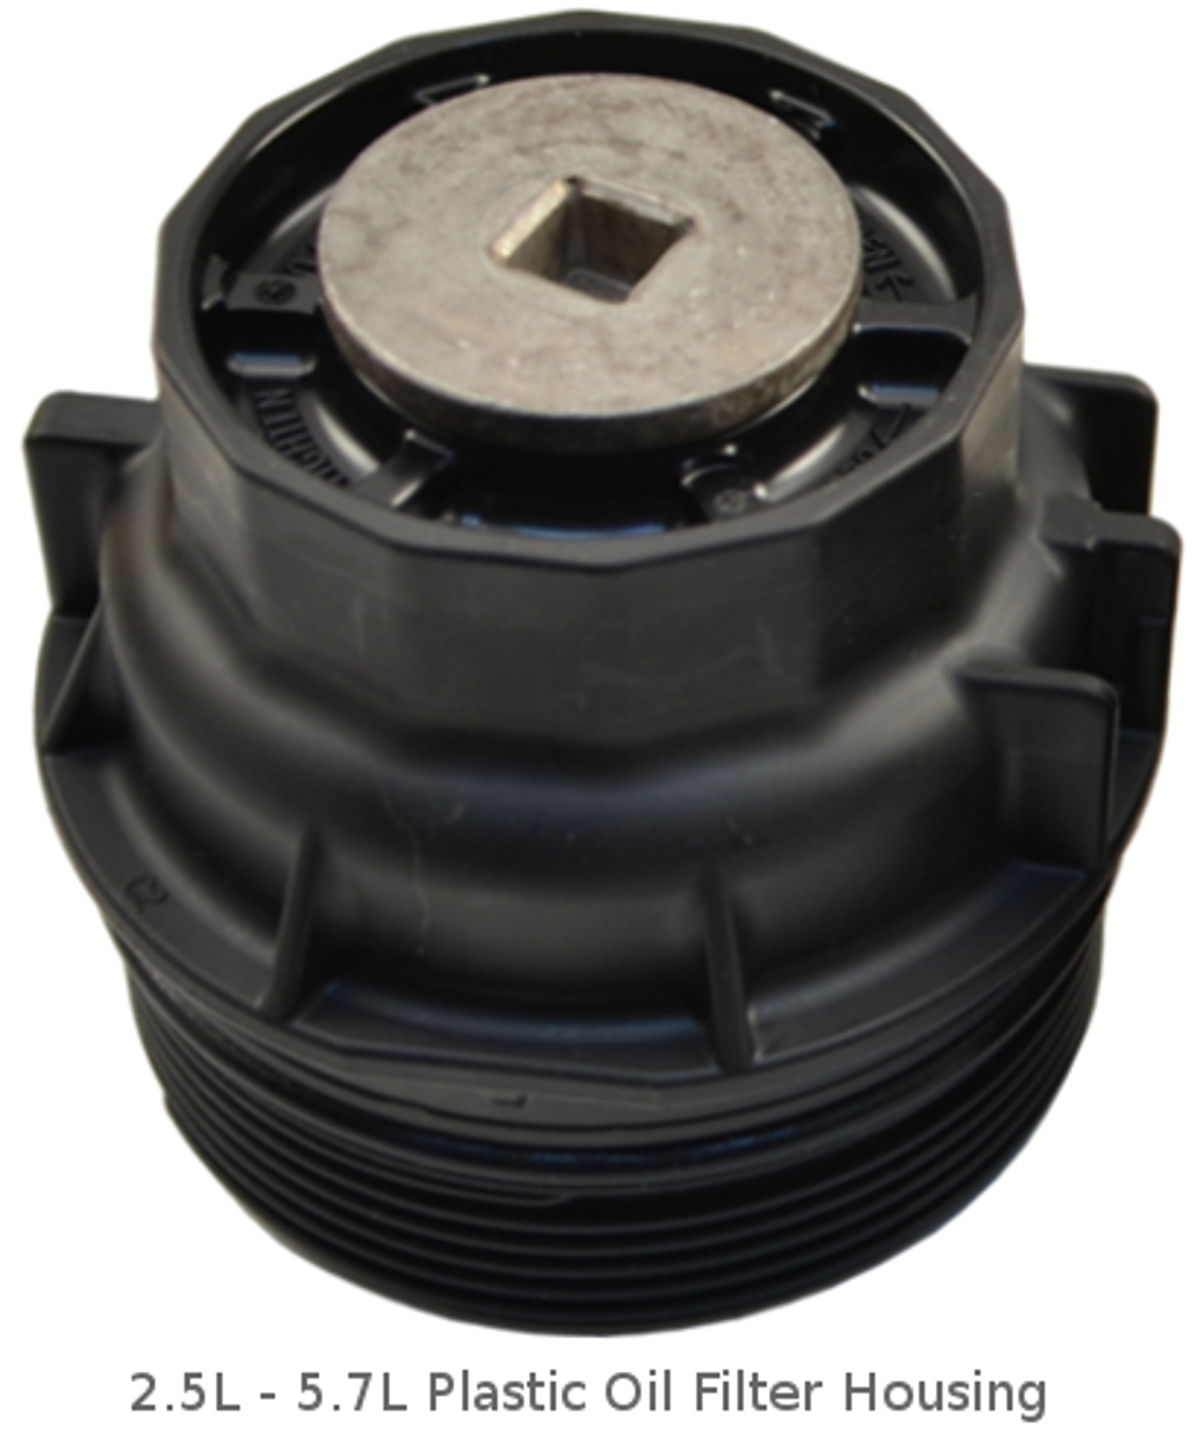 2.5L - 5.7L toyota plastic oil filter housing